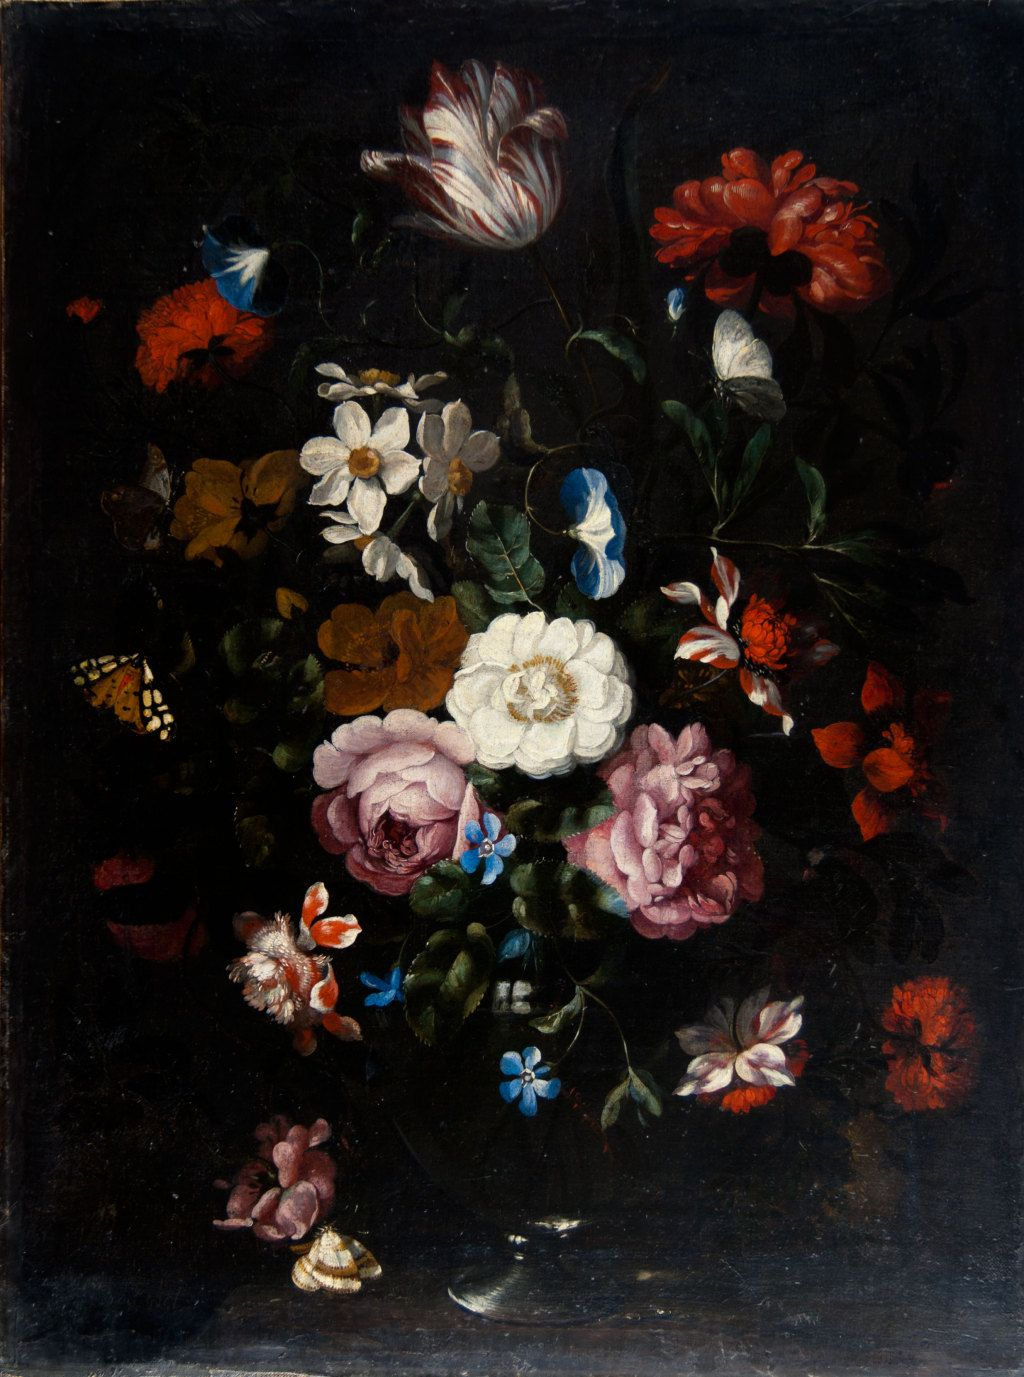 Exhibition The Kingdom Of Flora Dutch And Flemish Still Life Paintings Of 17th Century Floral Art Paintings Dutch Still Life Floral Painting